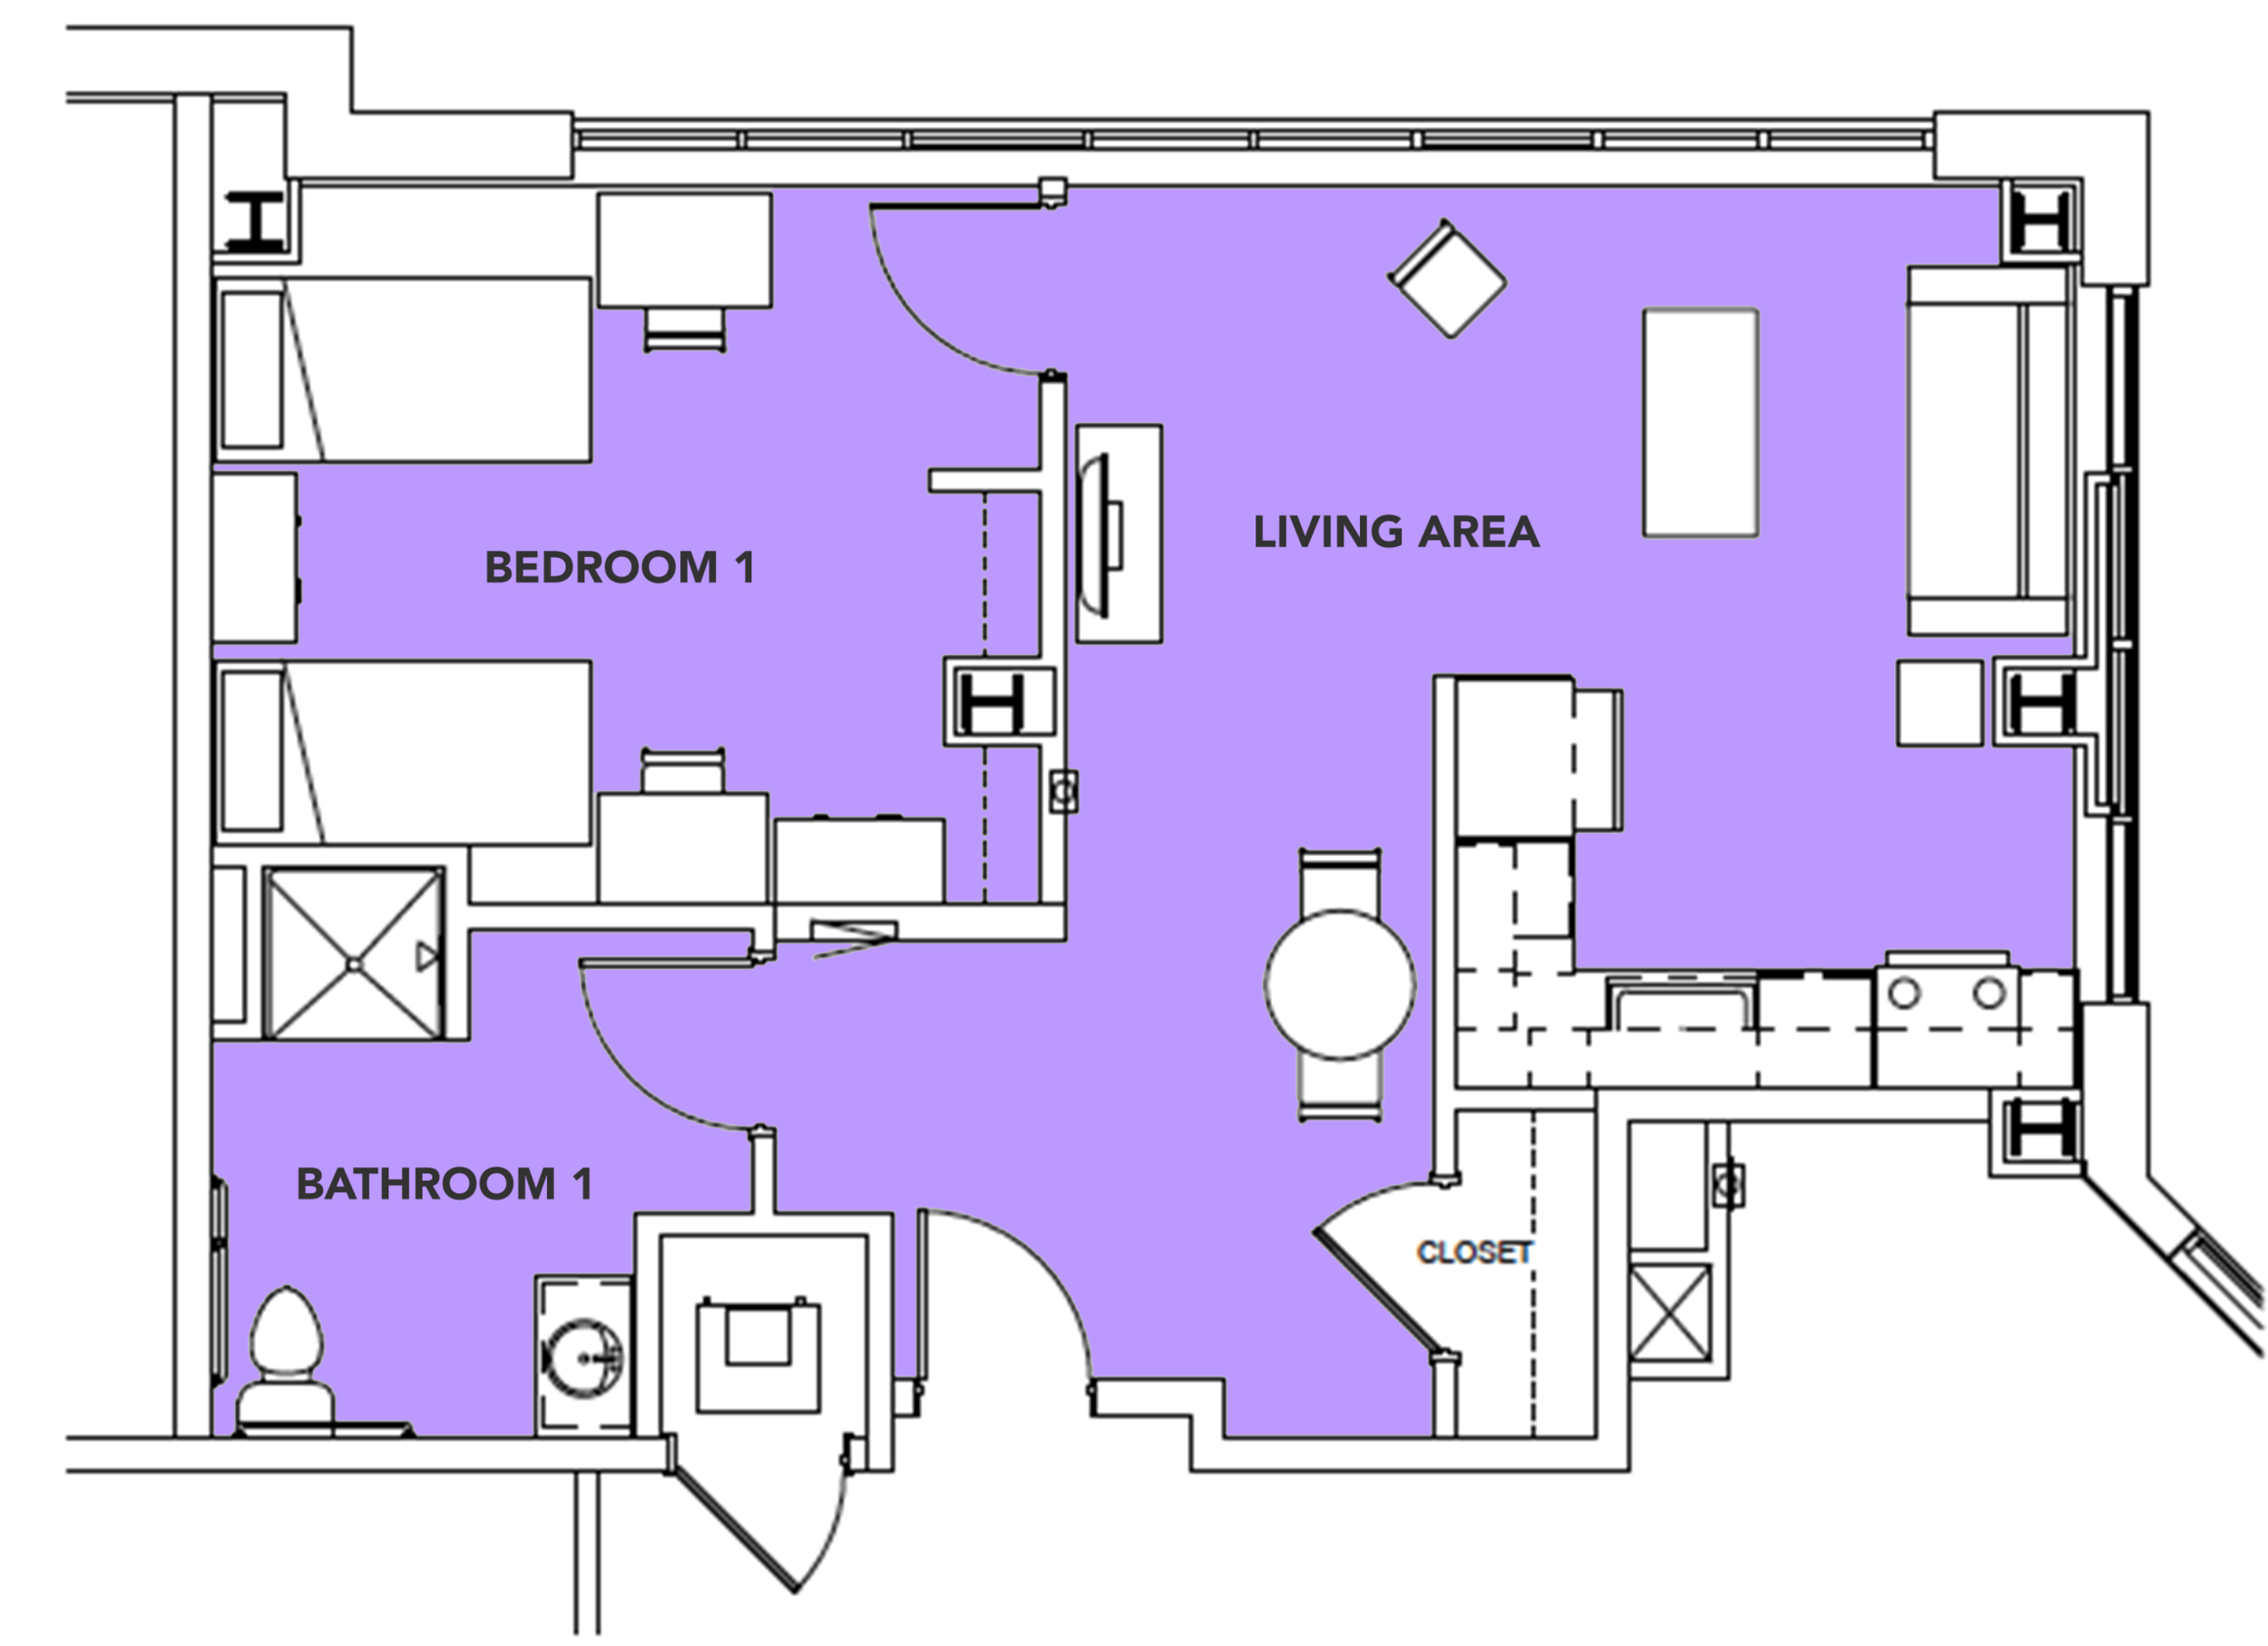 2 Students  - 1 bed,1 bath